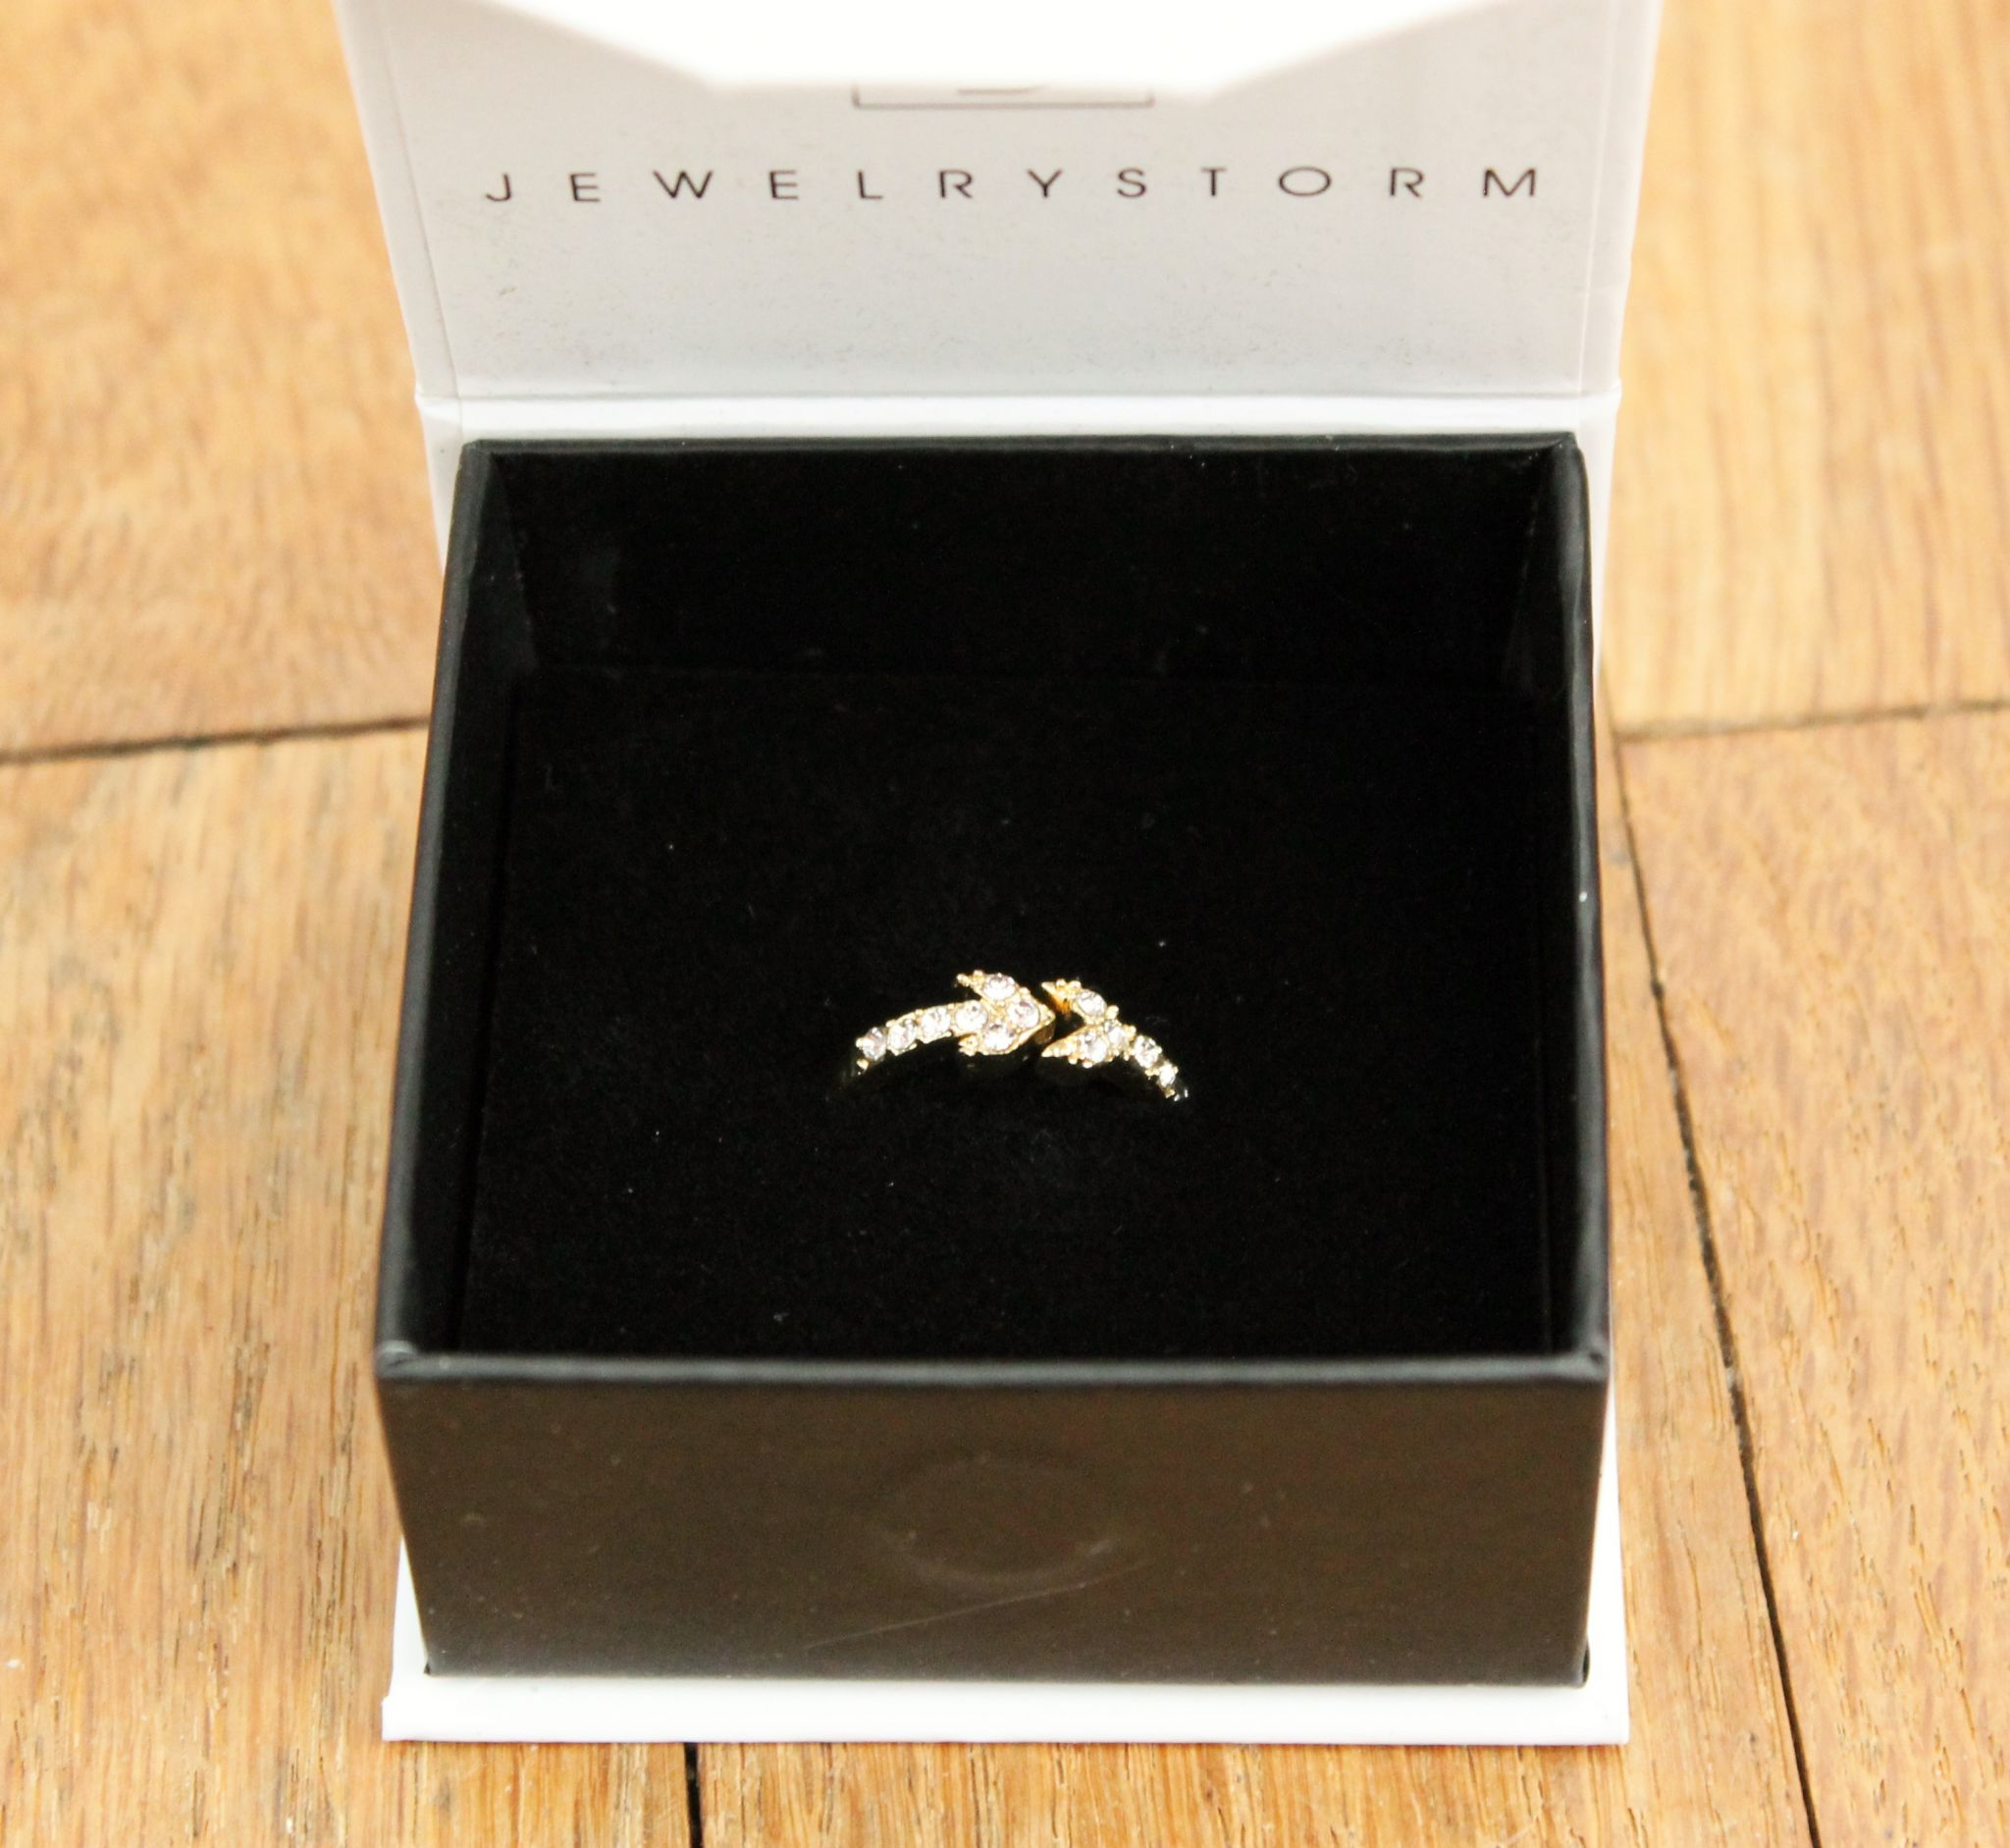 February Popsugar Must Have Box Review JewelryStorm Endless Arrow Ring